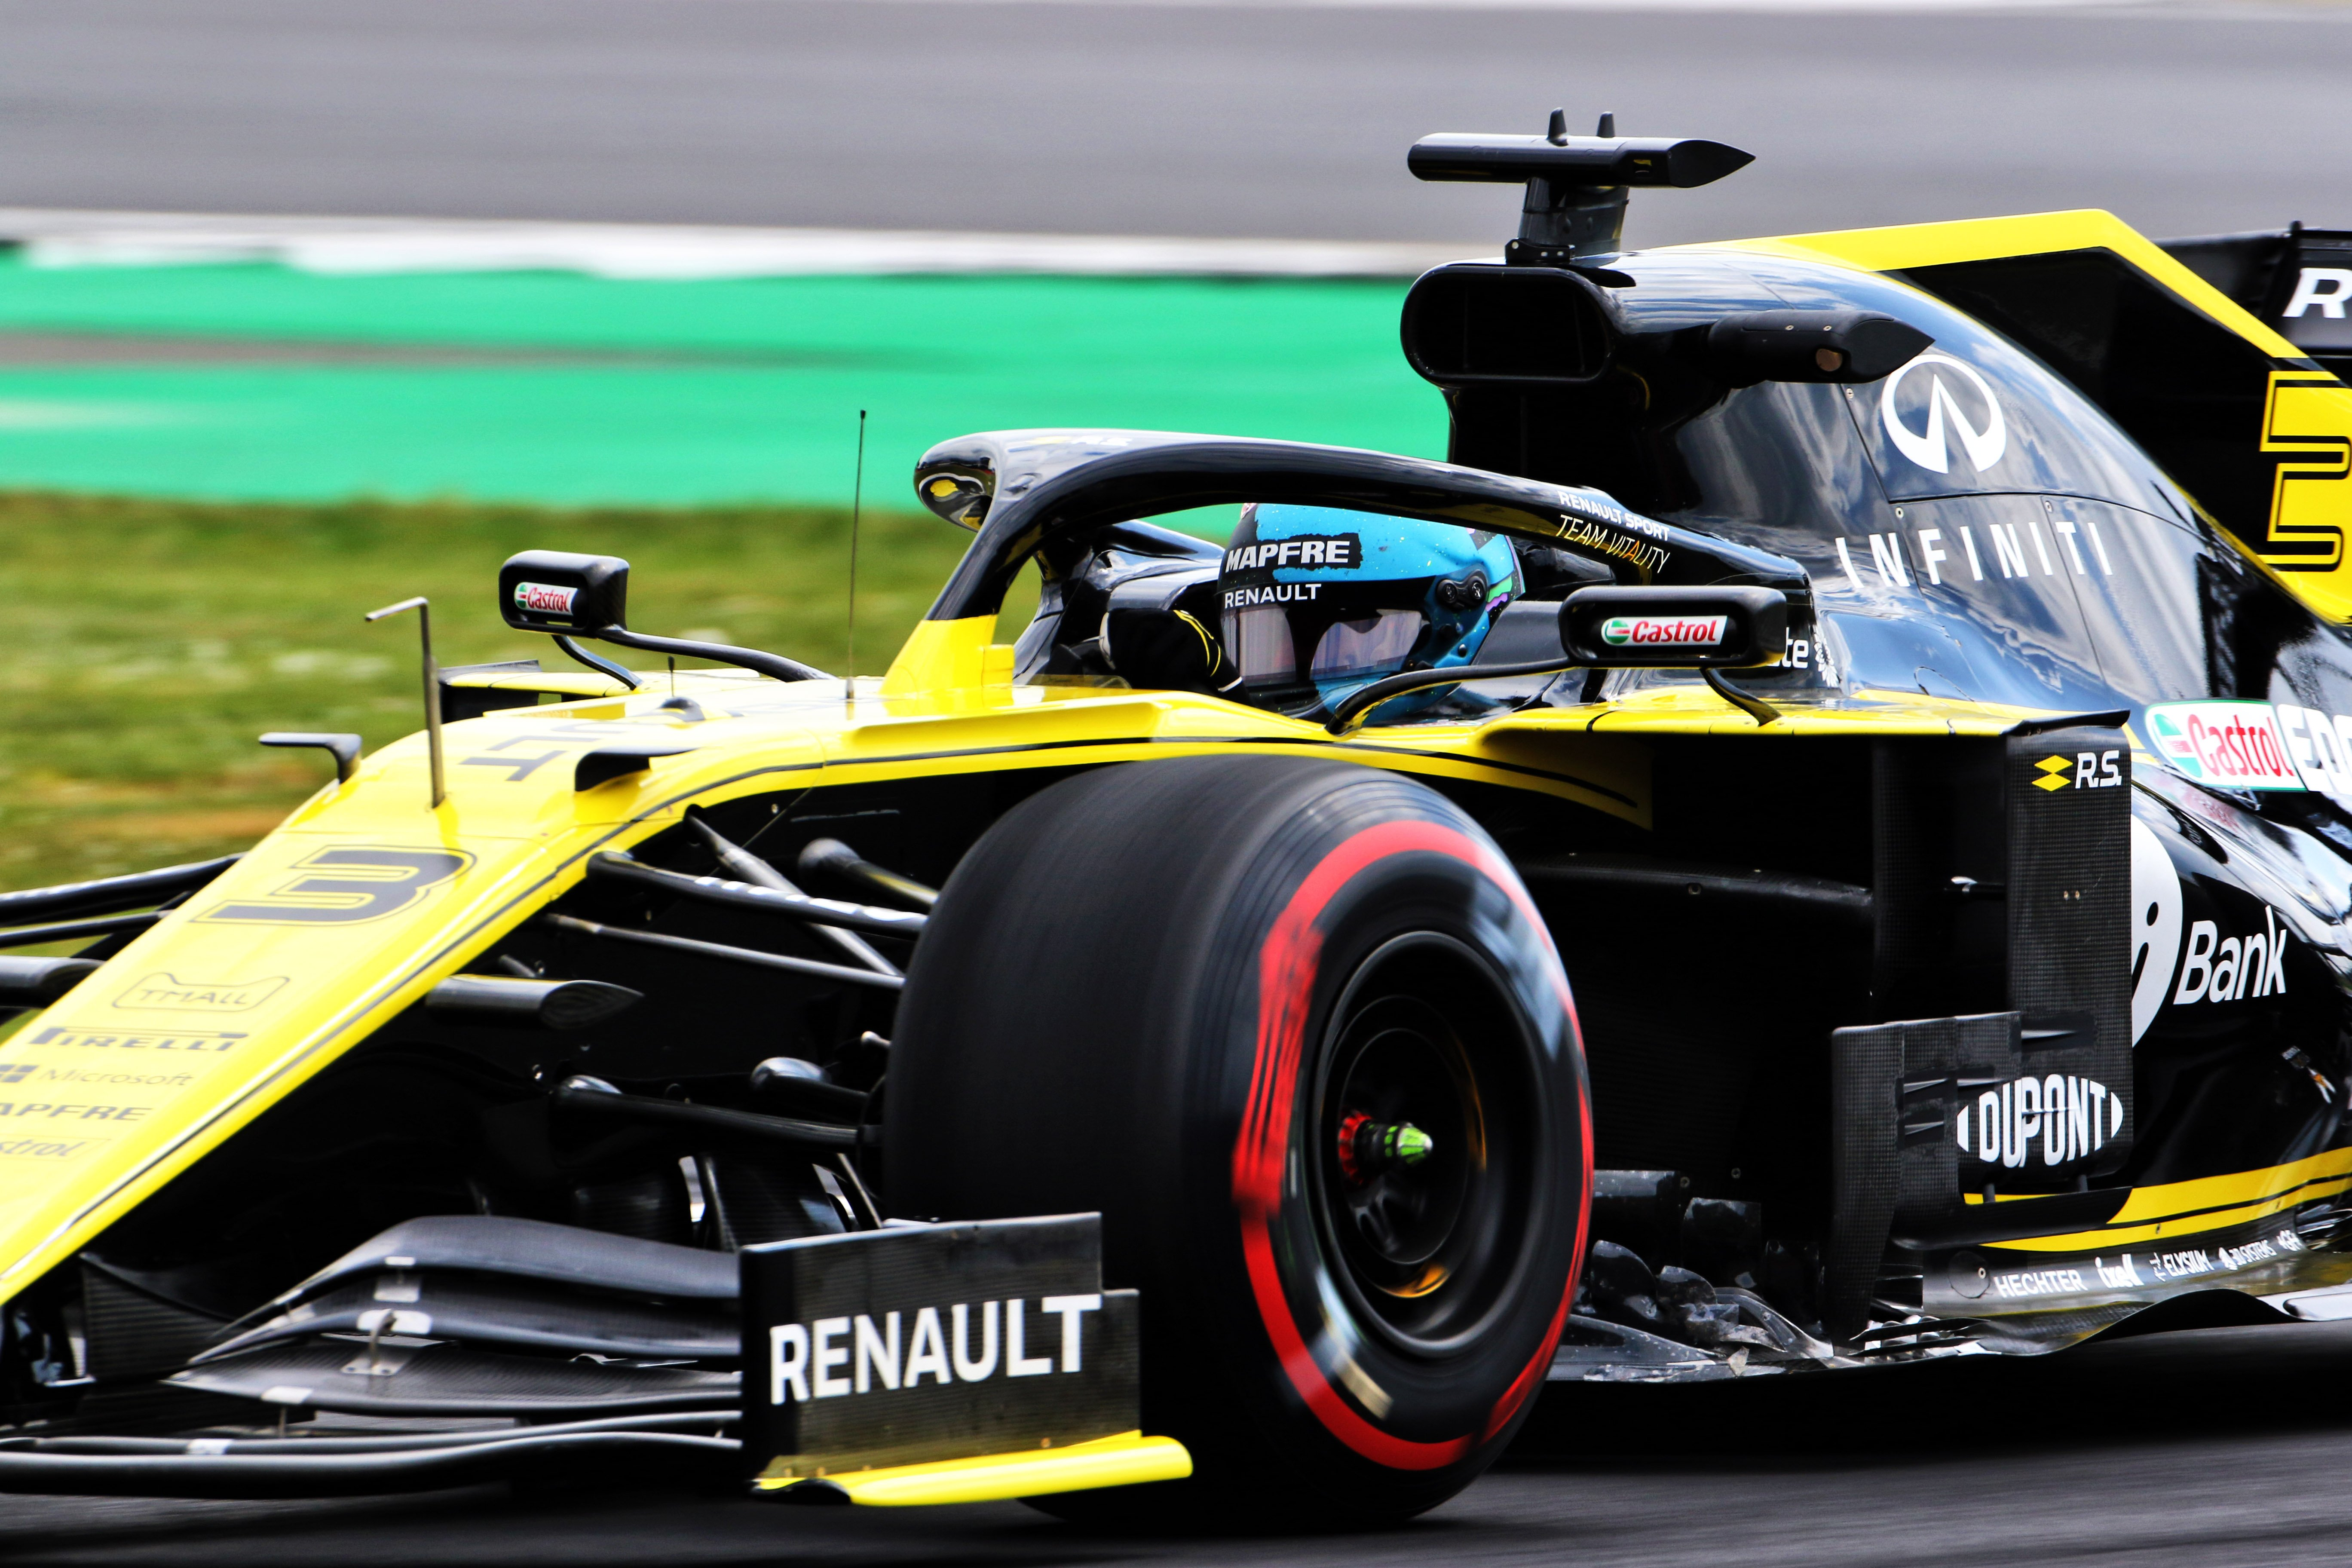 Renault puts down Ricciardo's 'Pony' engine - Speedcafe